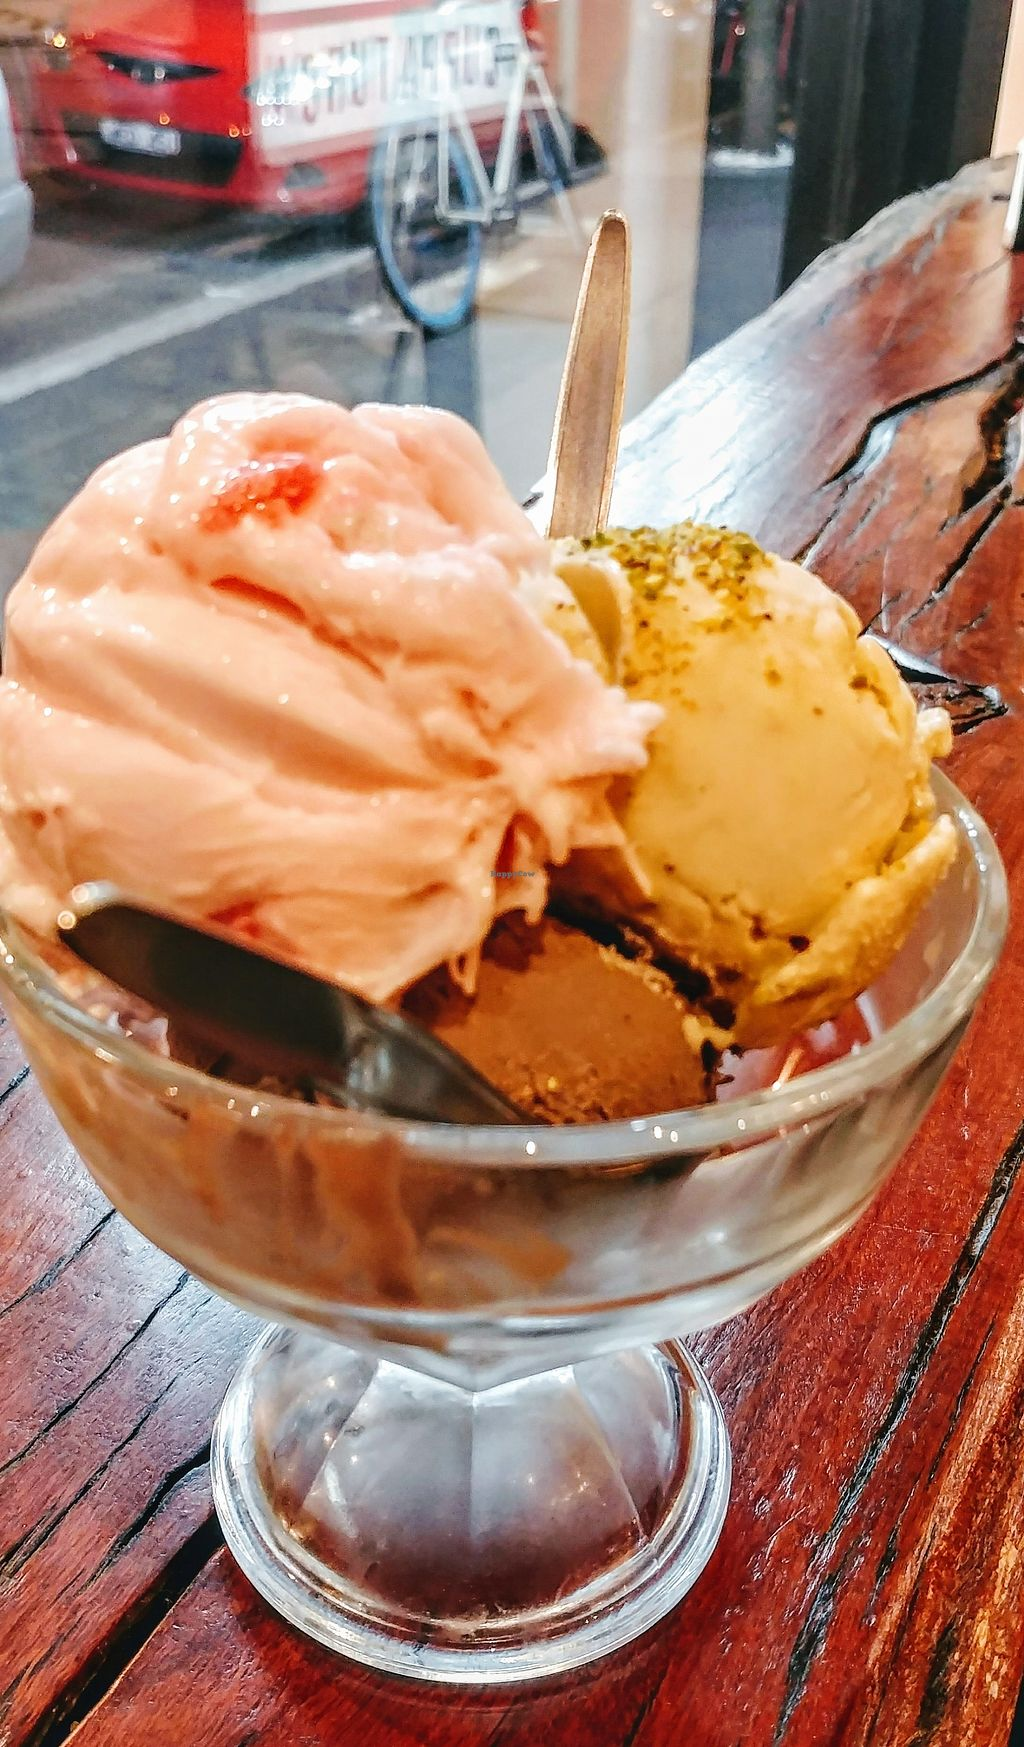 """Photo of Cuppa Turca  by <a href=""""/members/profile/karlaess"""">karlaess</a> <br/>Turkish delight, pistachio and black tahini flavoured icecreams <br/> April 10, 2018  - <a href='/contact/abuse/image/117302/383241'>Report</a>"""